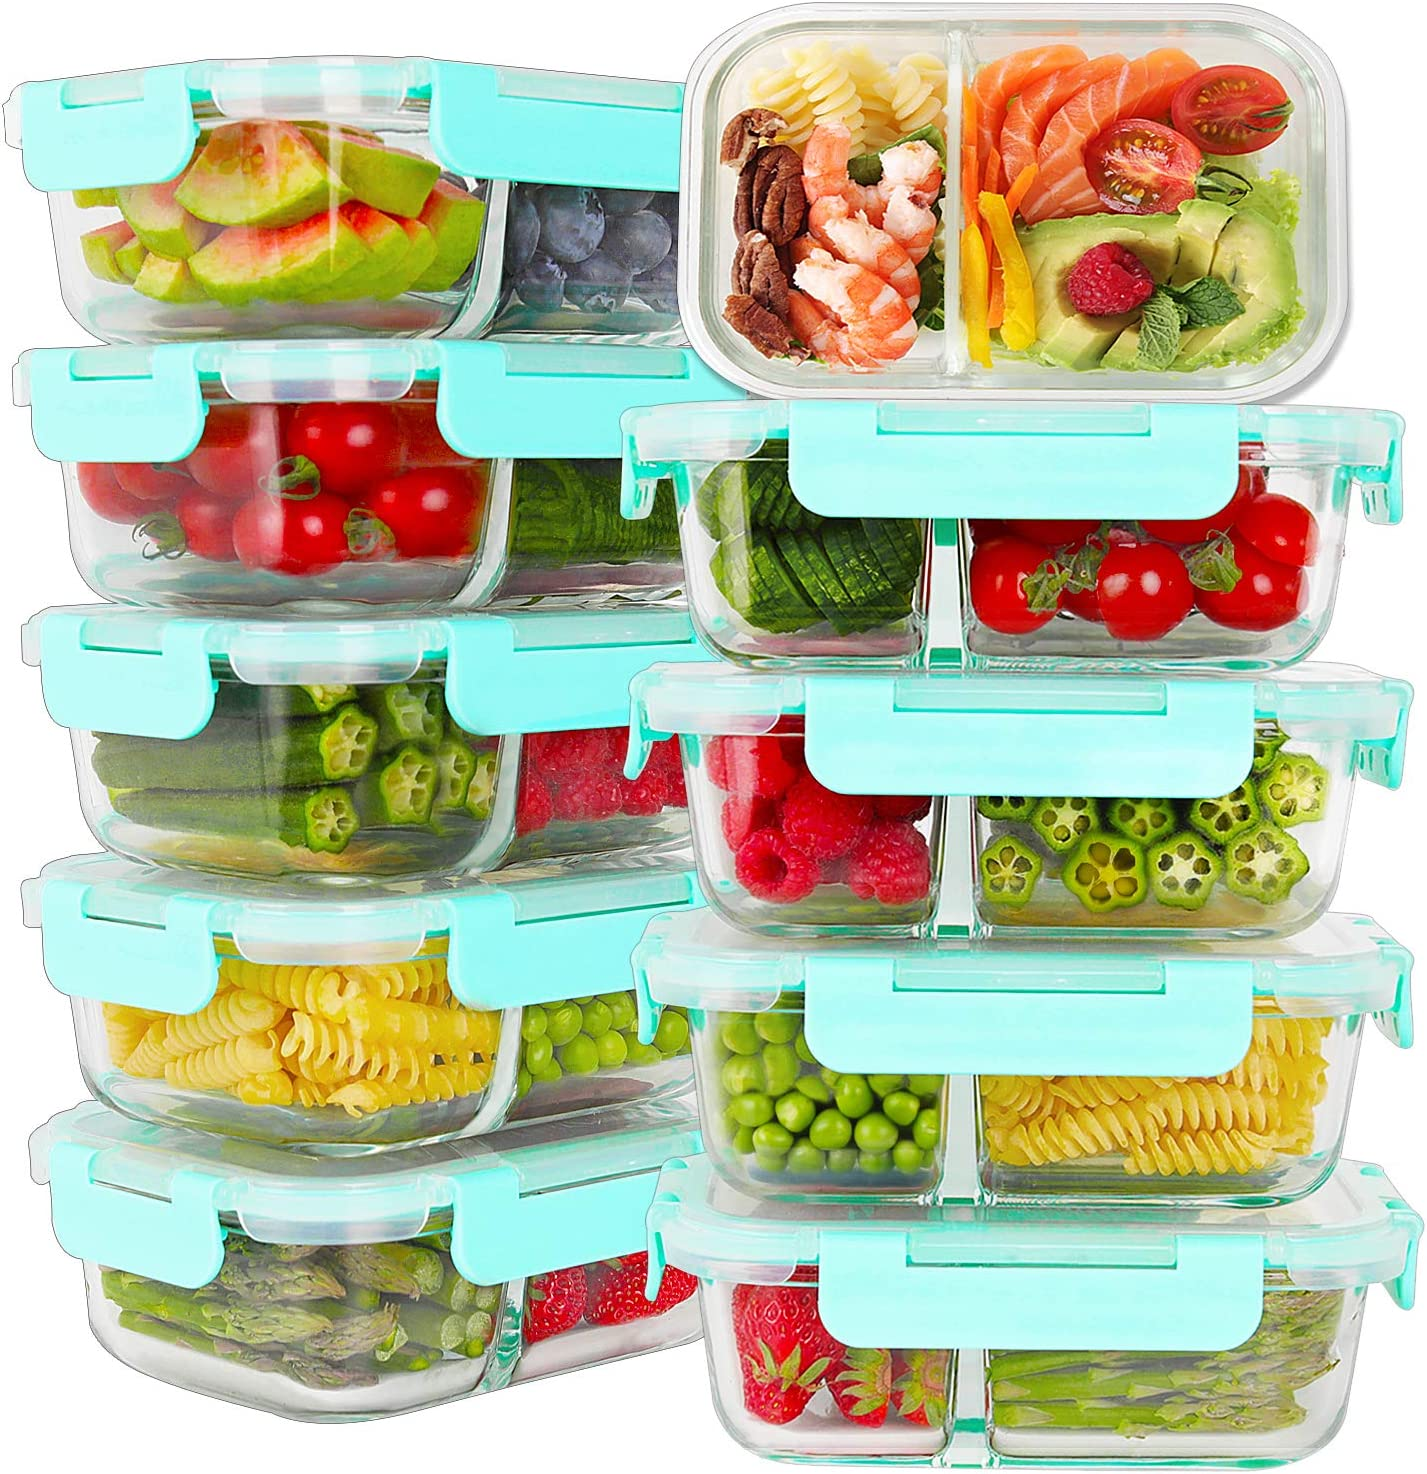 Bayco 10 Pack Glass Meal Prep Containers 2 Compartment, Glass Food Storage Containers with Lids, Airtight Glass Lunch Bento Boxes, BPA-Free & Leak Proof (10 lids & 10 Containers)